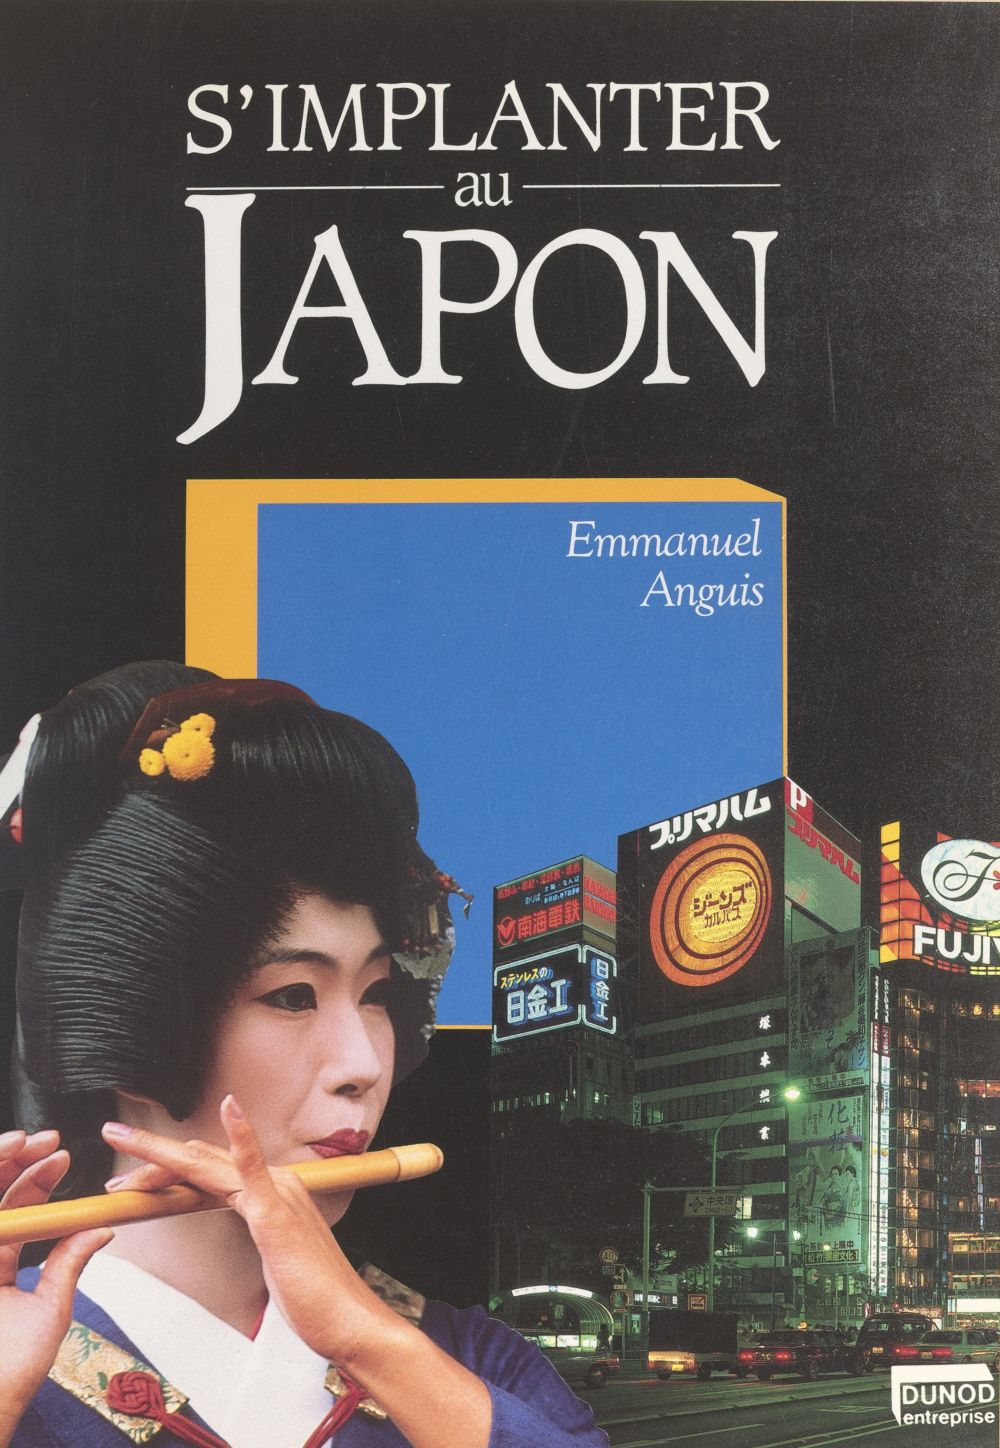 S'implanter au Japon